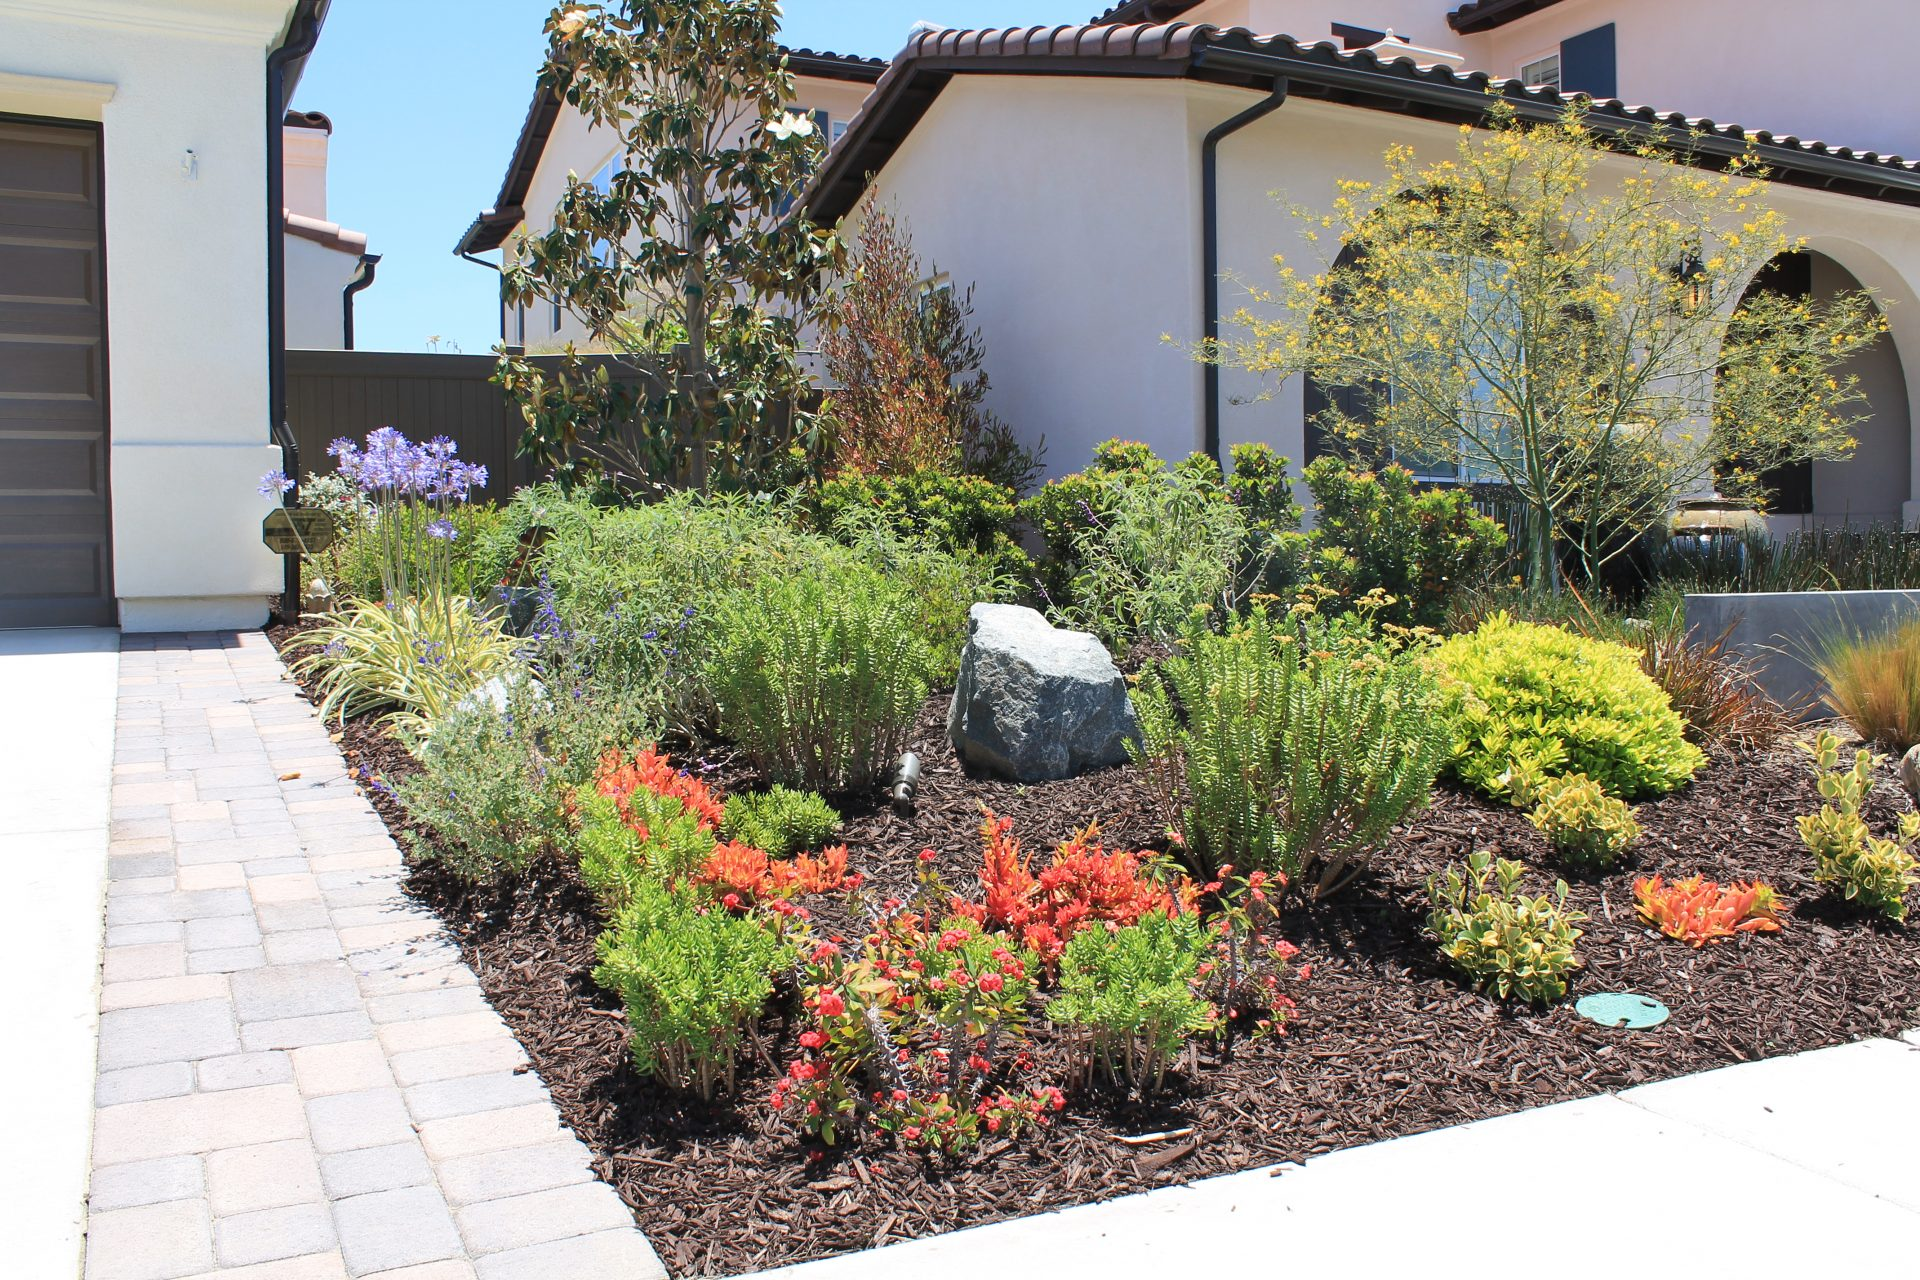 Water Districts Partner To Offer Free Workshop In Encinitas Watersmart Landscape Design For Homeowners Olivenhain